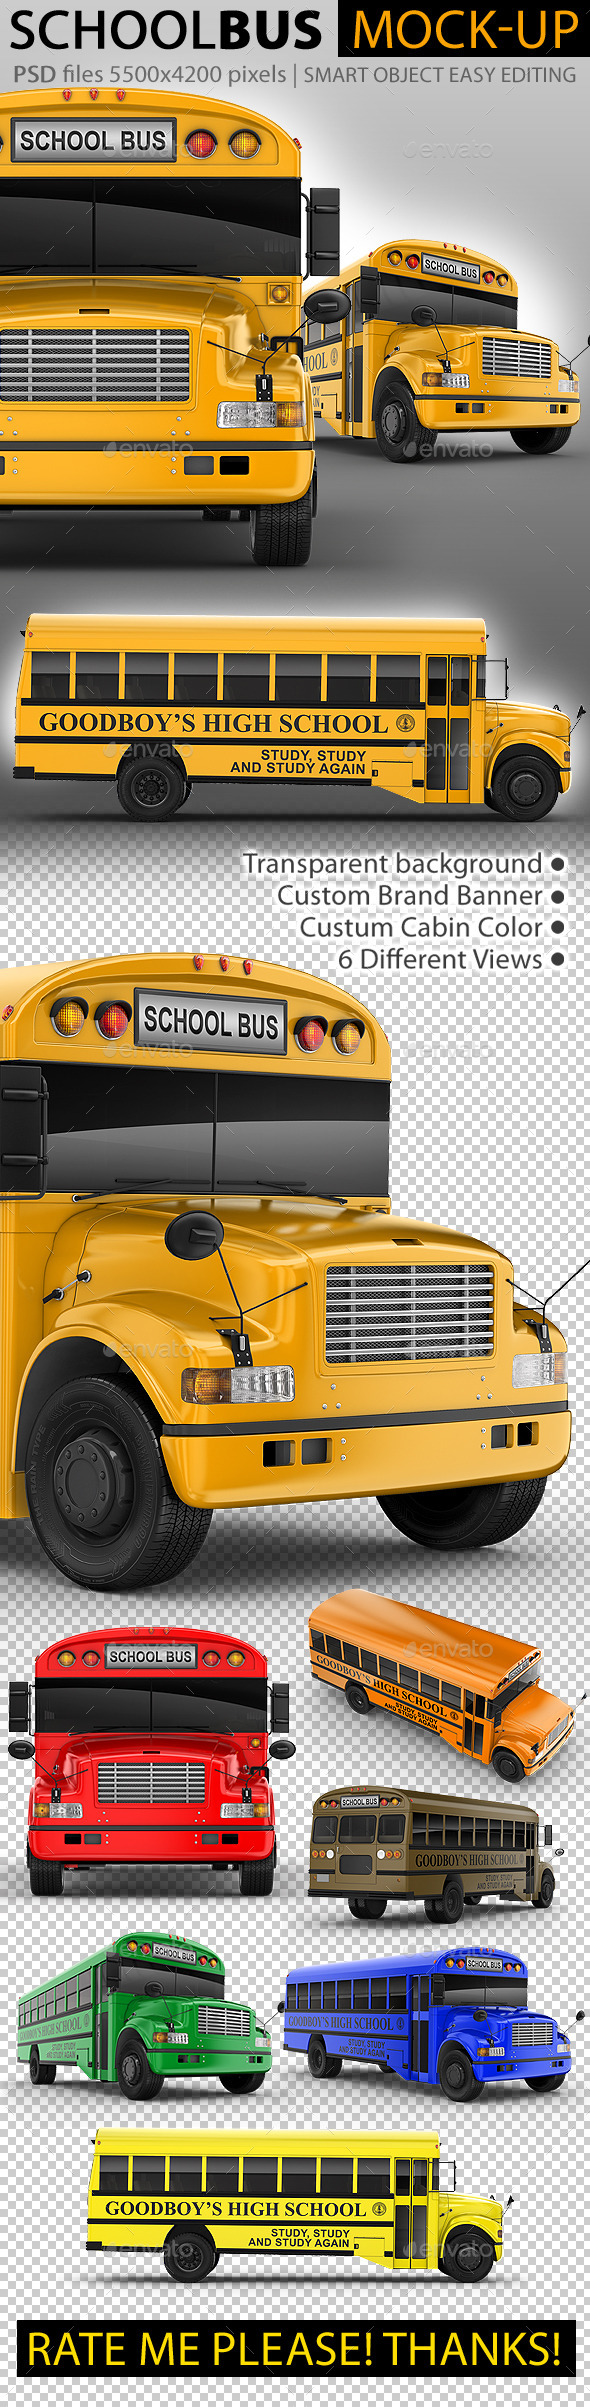 School Bus Mock-Up. 3d Schoolbus